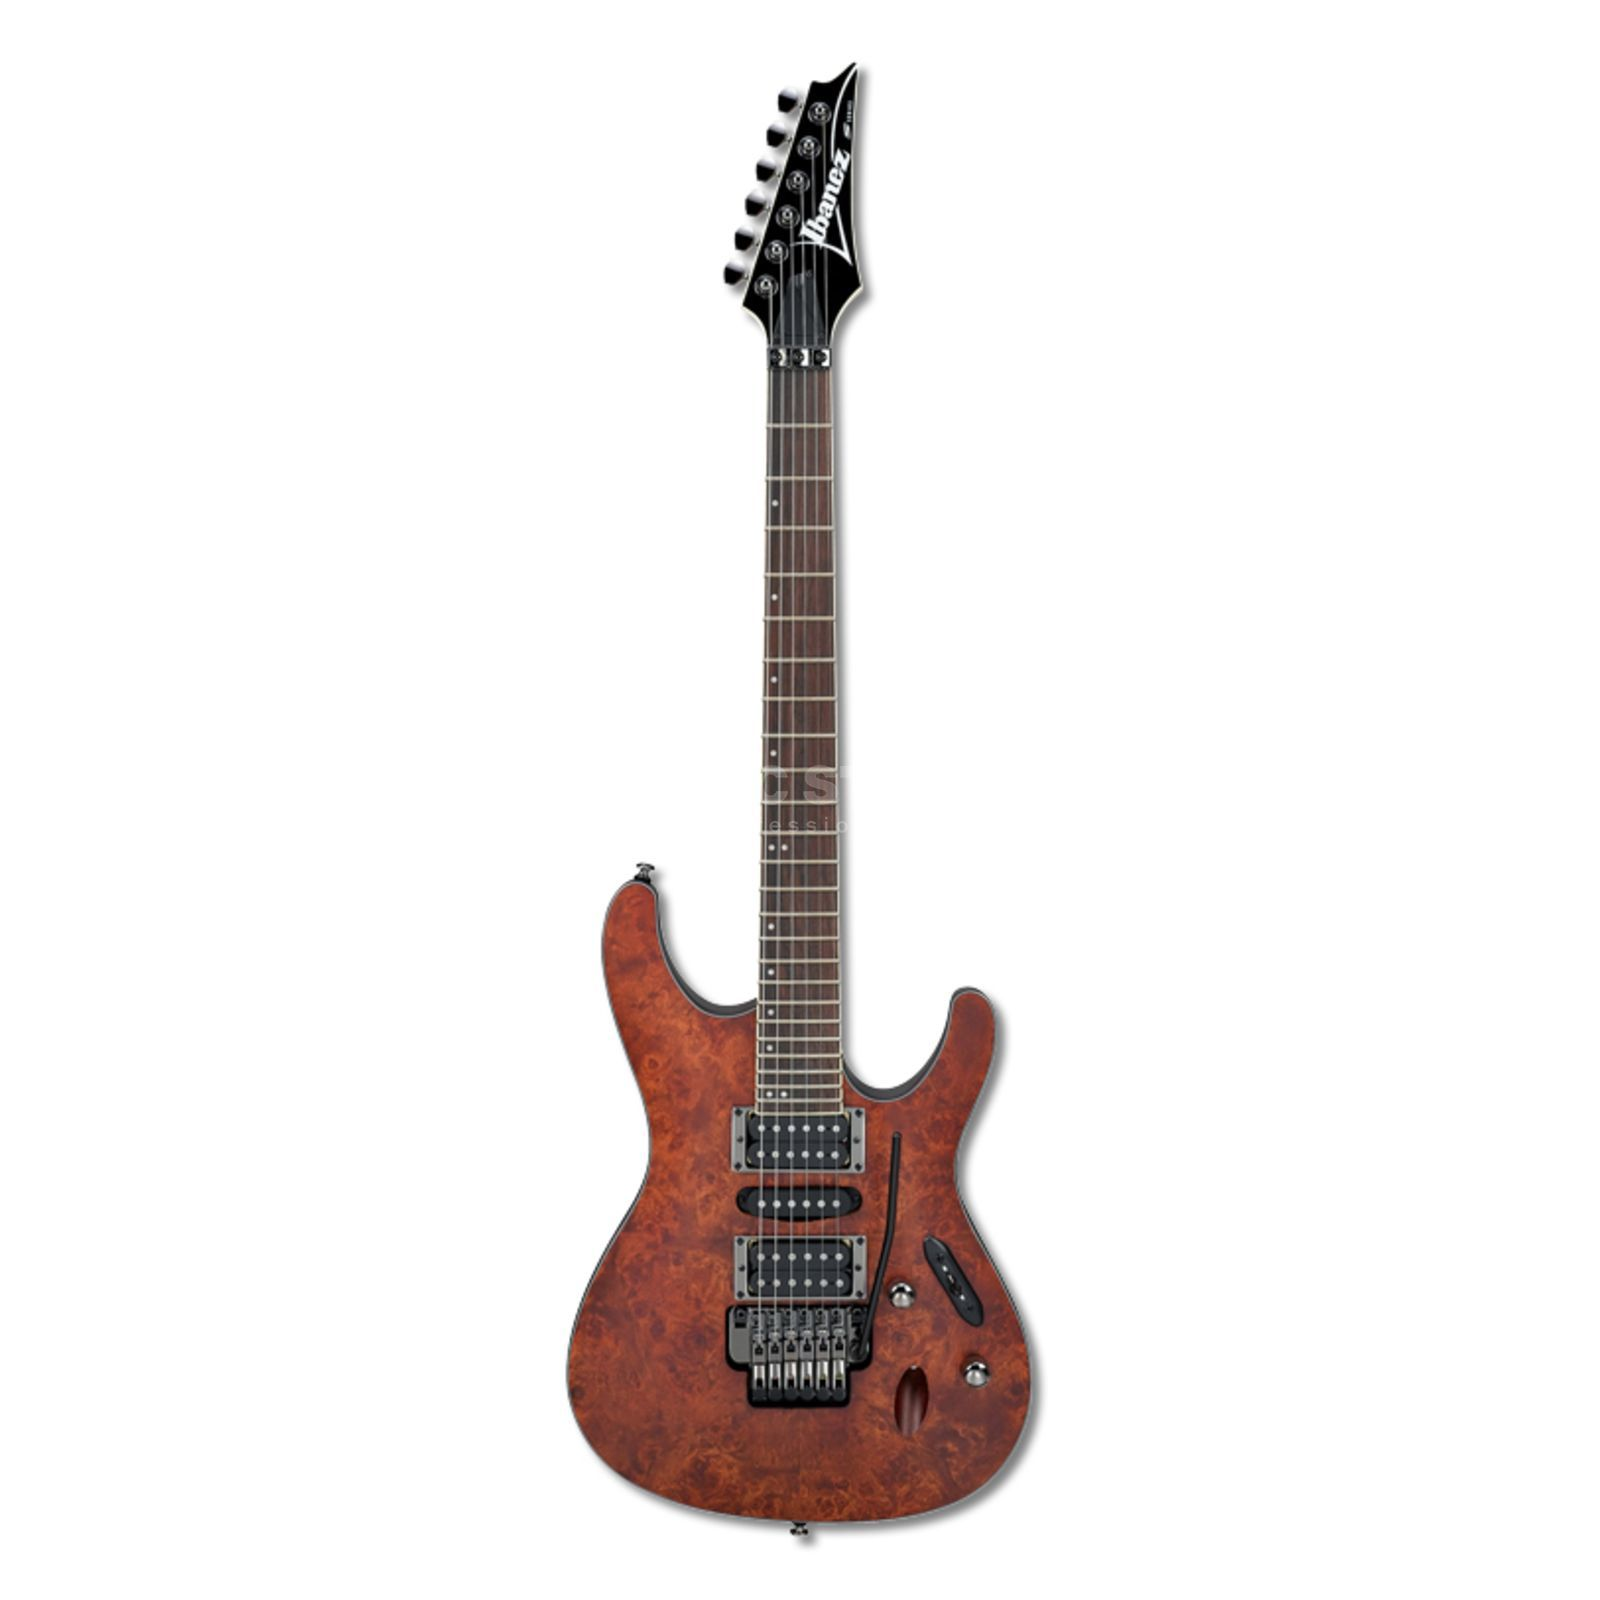 Ibanez S770PB-CNF Charcoal Brown Flat Produktbillede